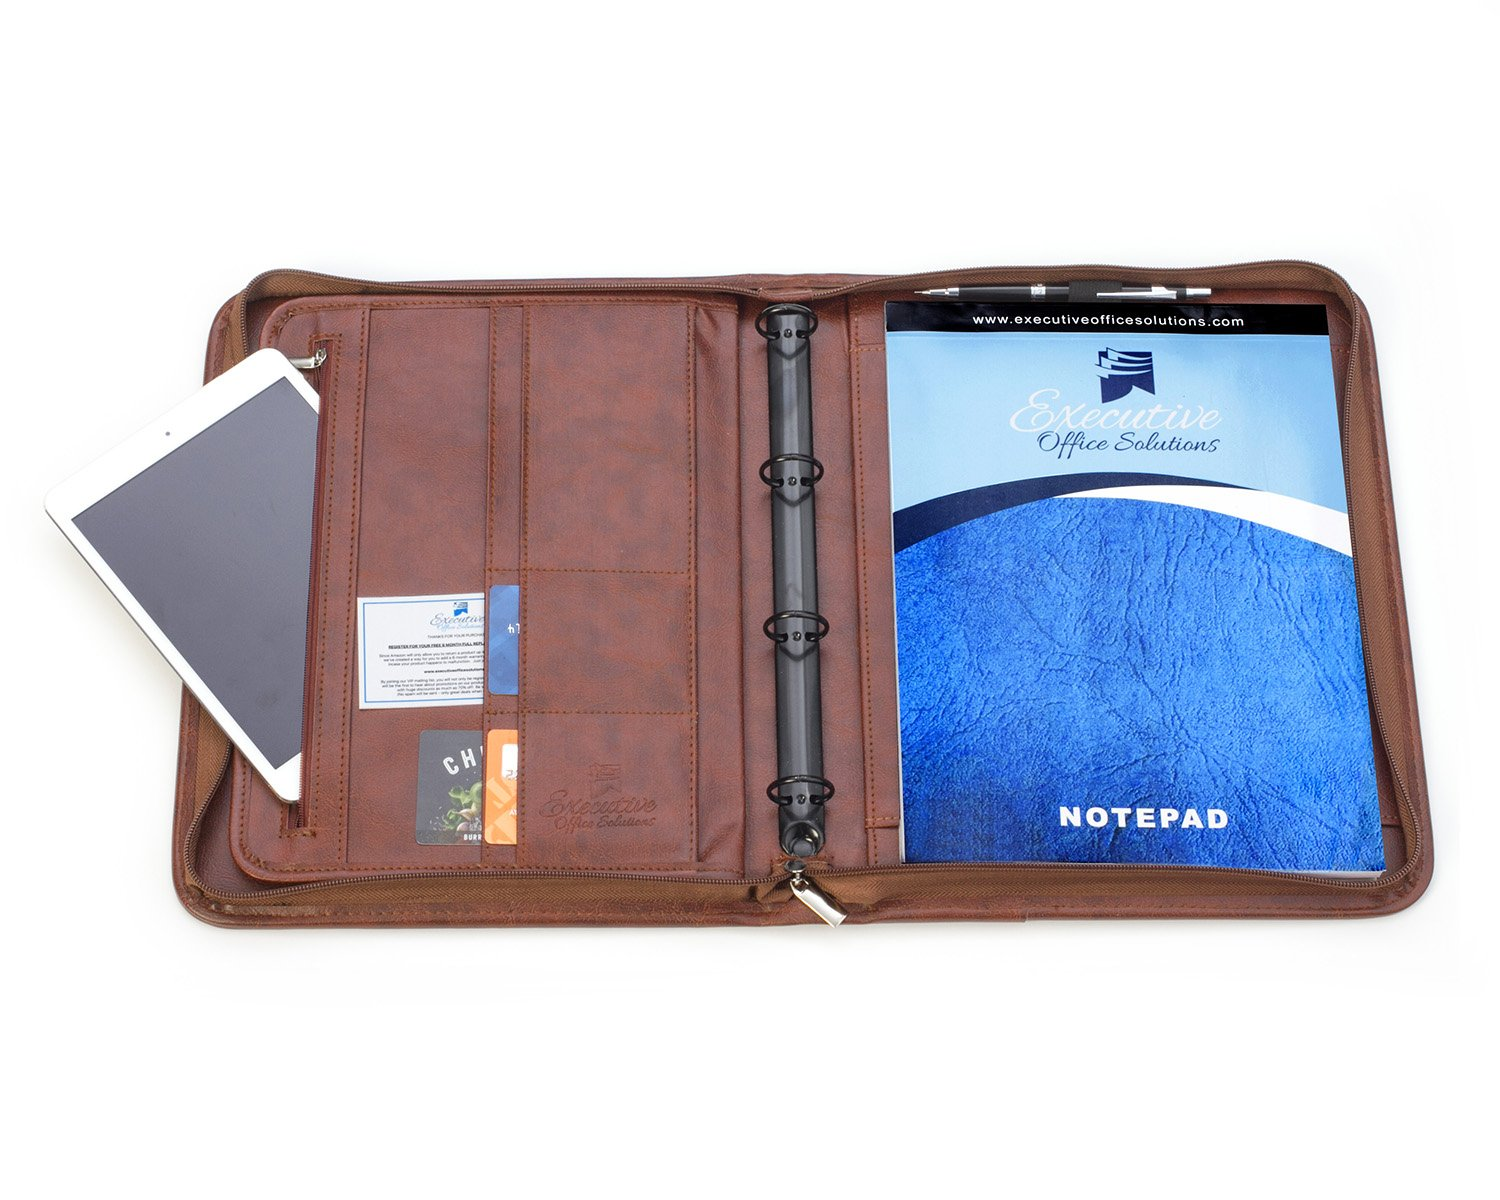 Professional Business Padfolio Portfolio Briefcase Style Organizer Folder Notepad and 4 Ring Binder - Brown Synthetic Leather